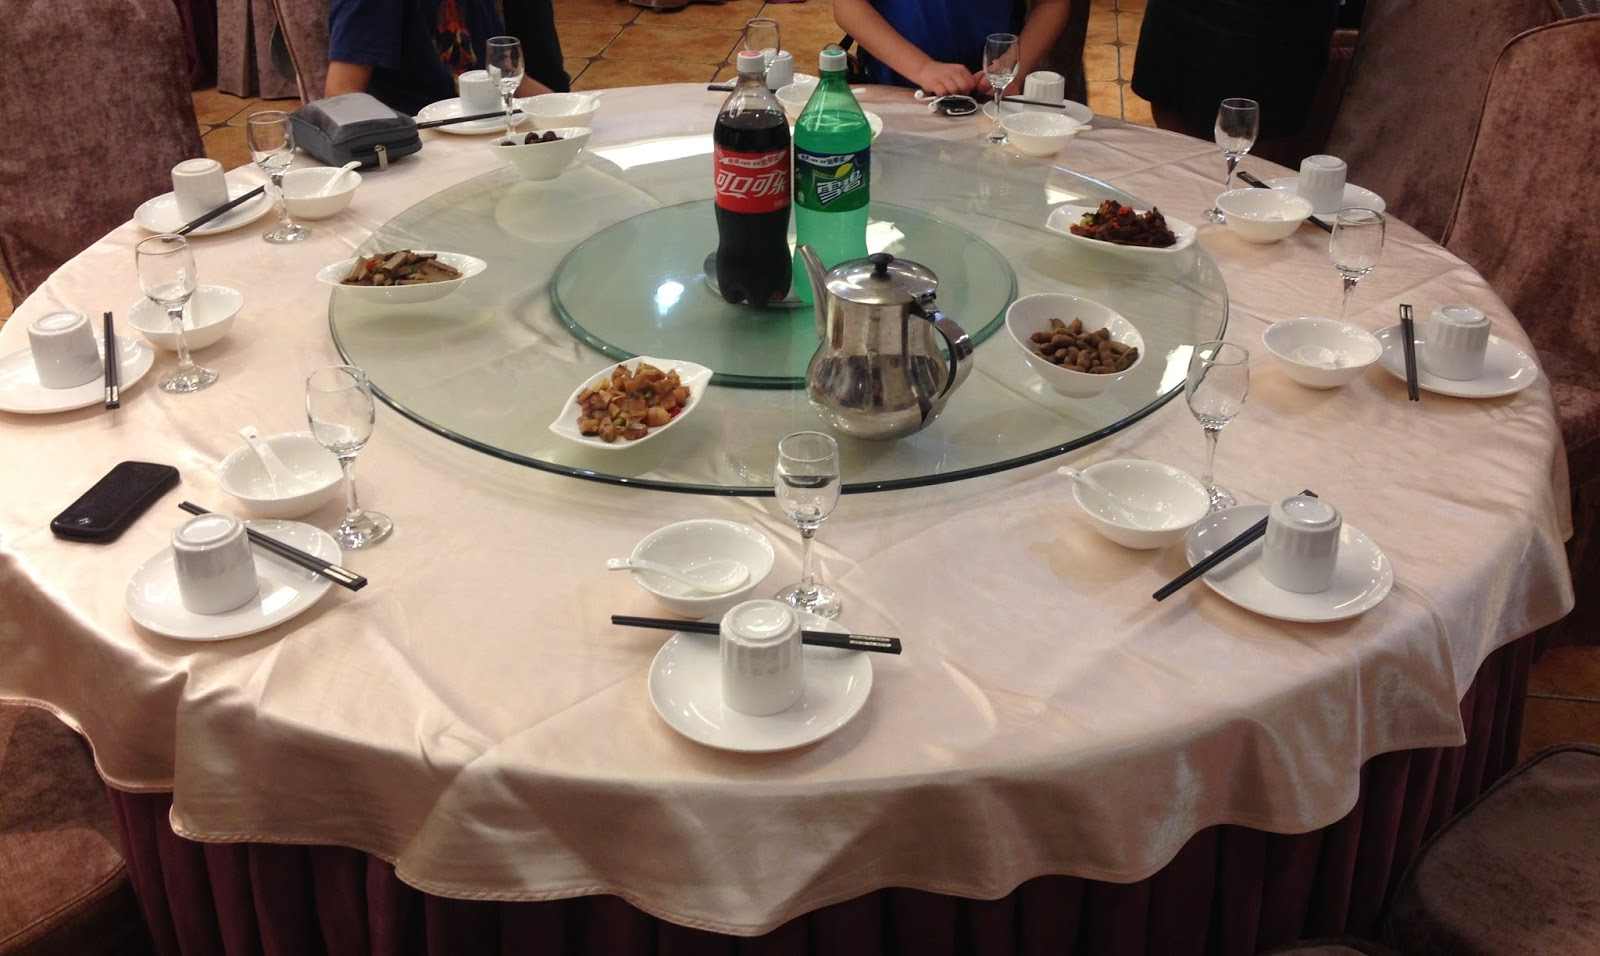 American table setting - Our Table Was Ready In Our Baojian